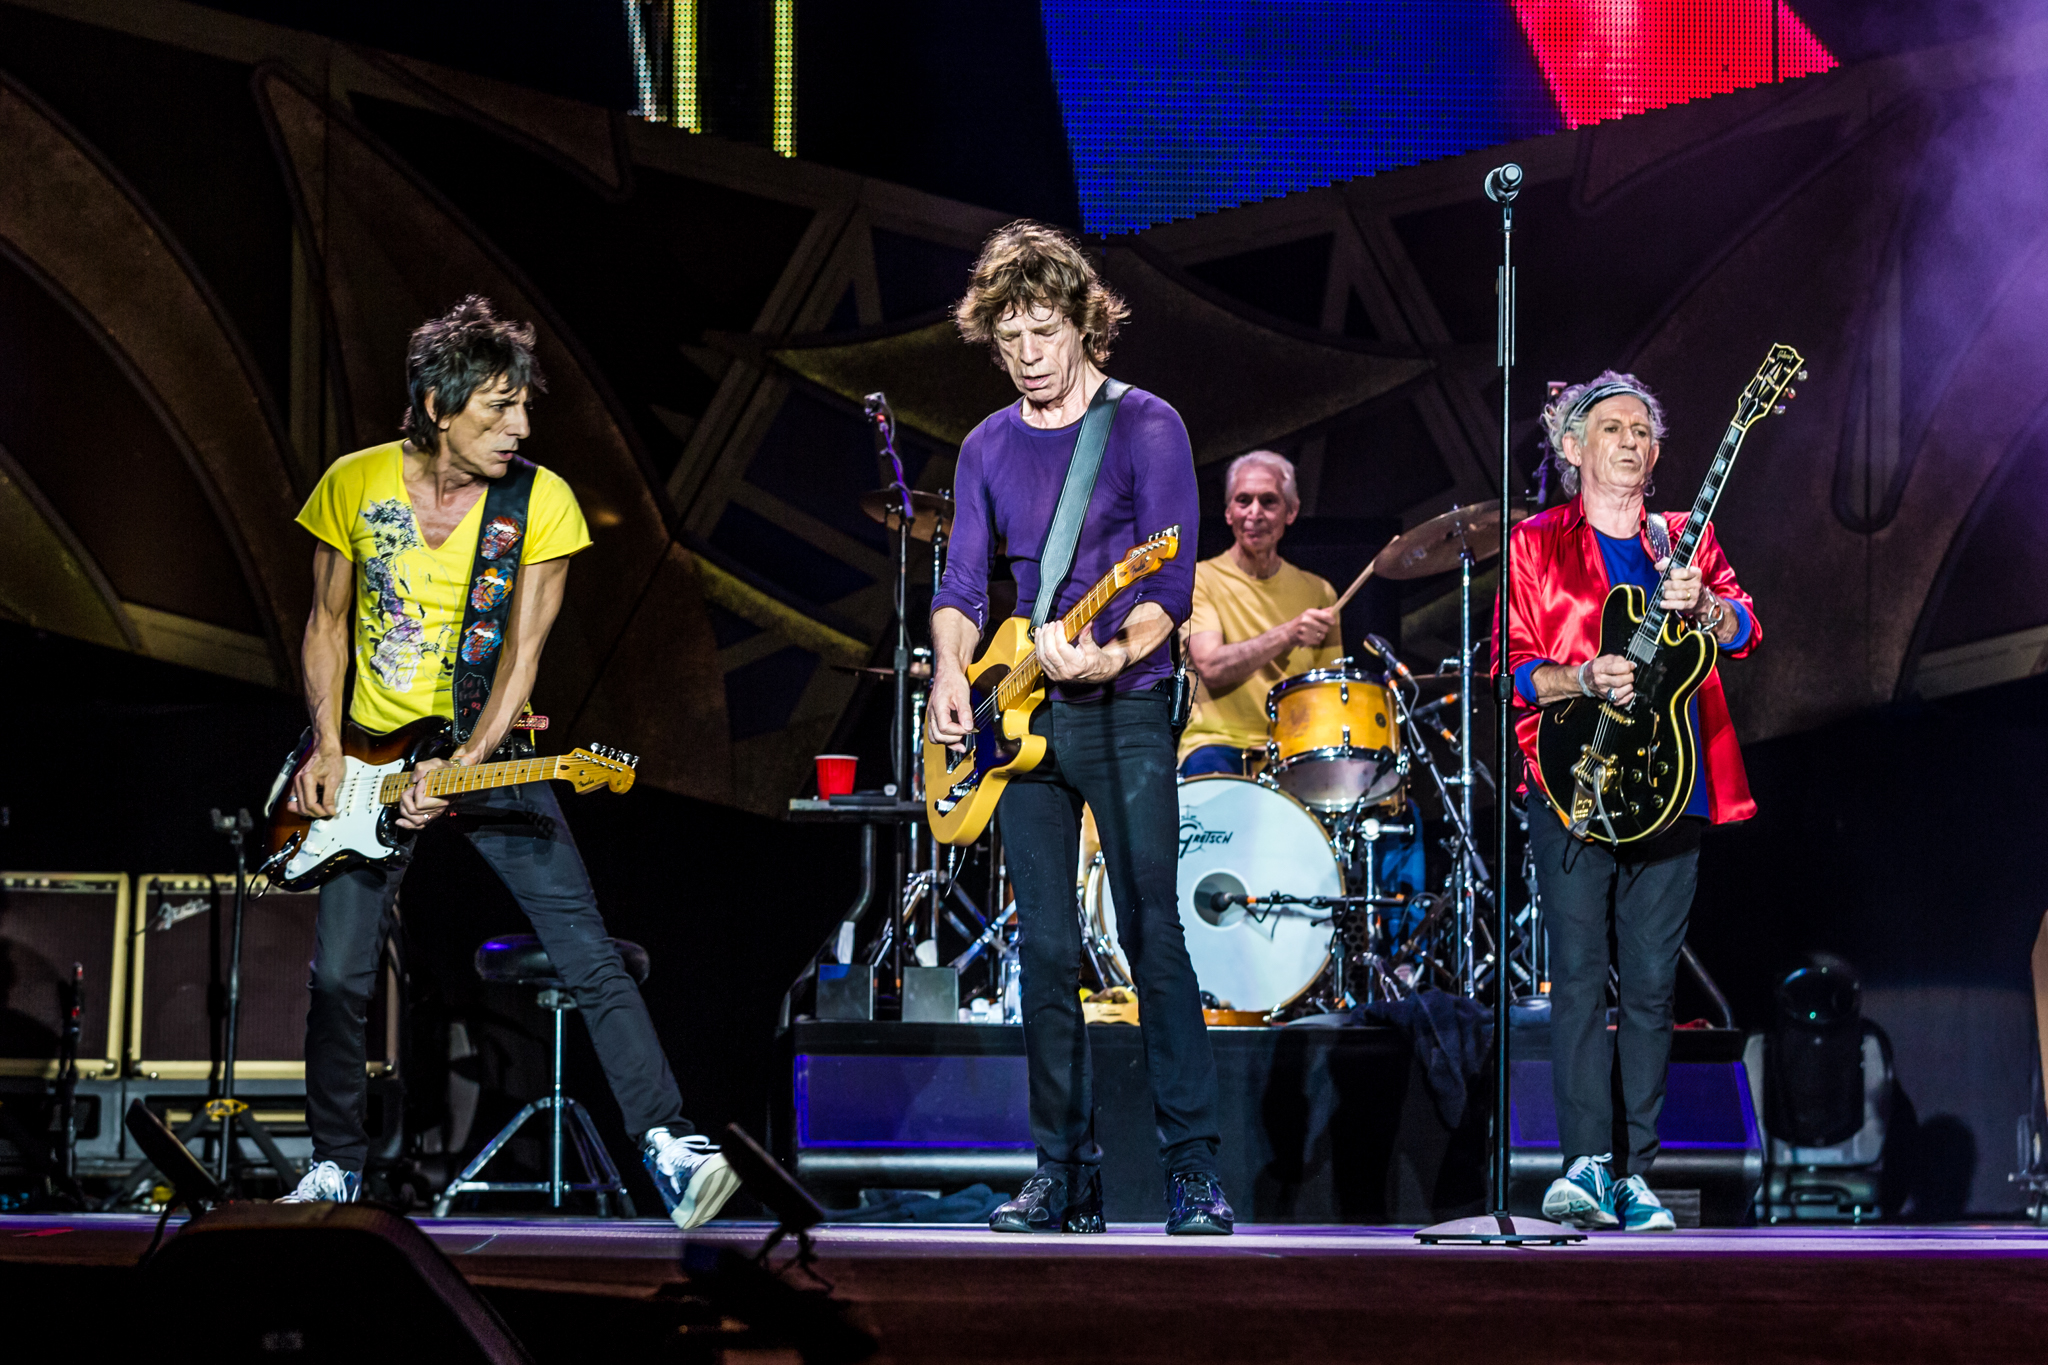 RollingStones_GATech15_iWally-17.jpg